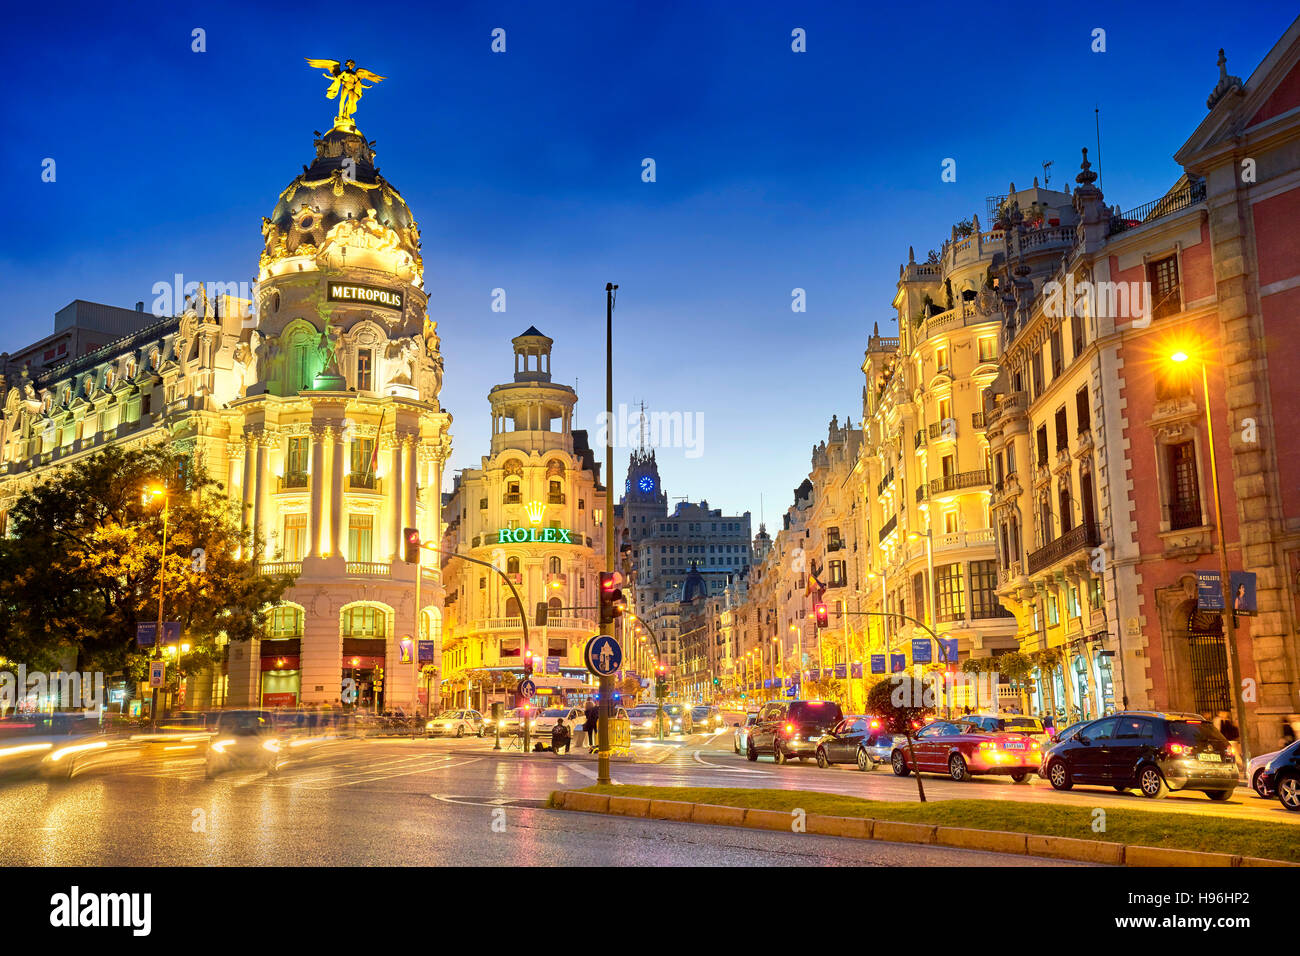 Metropole am Abend, Gran Via, Madrid, Spanien Stockbild